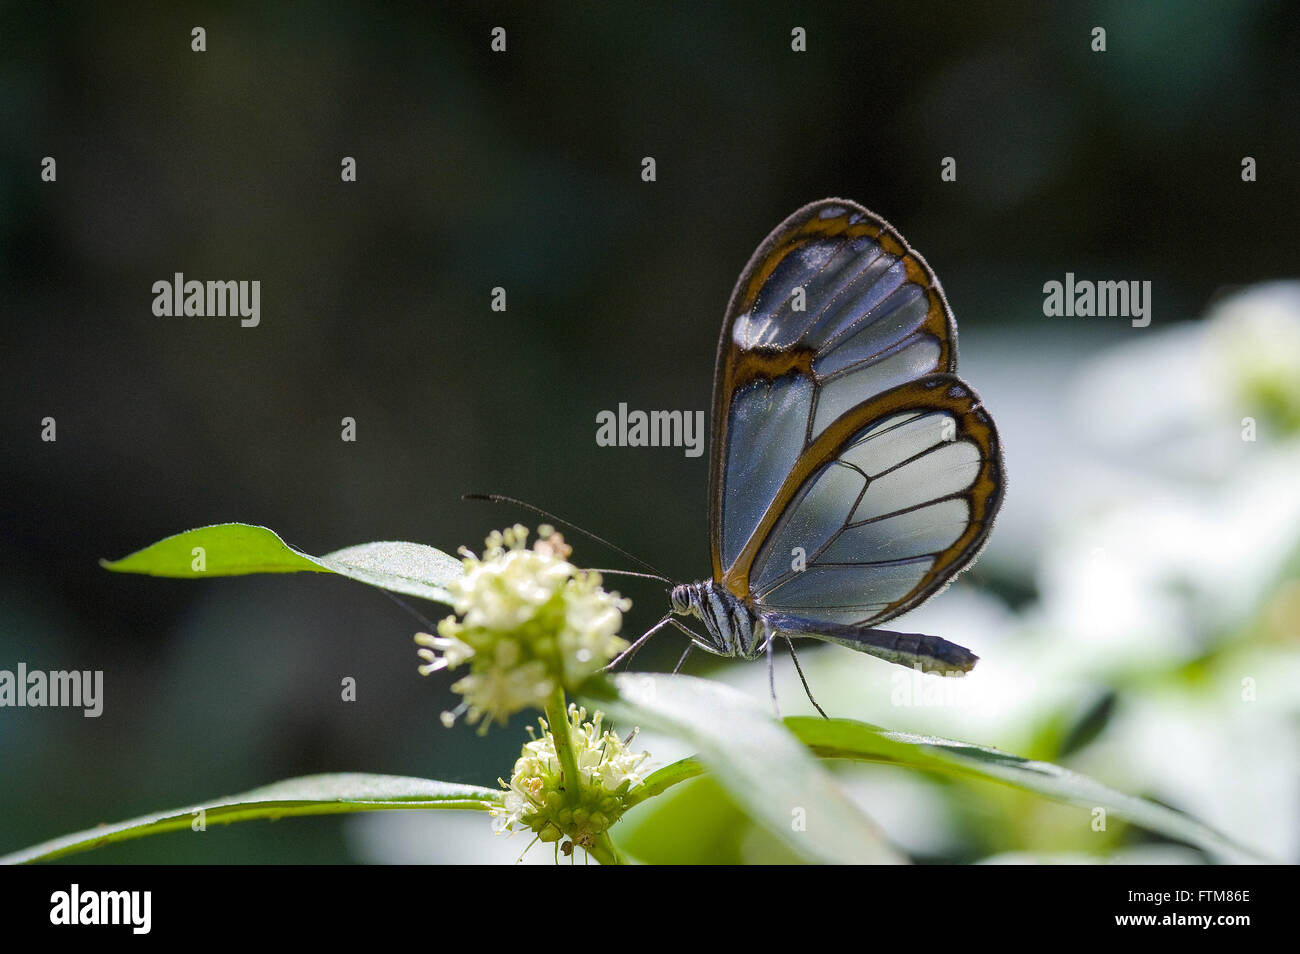 Butterfly family Nymphalidae - Stock Image